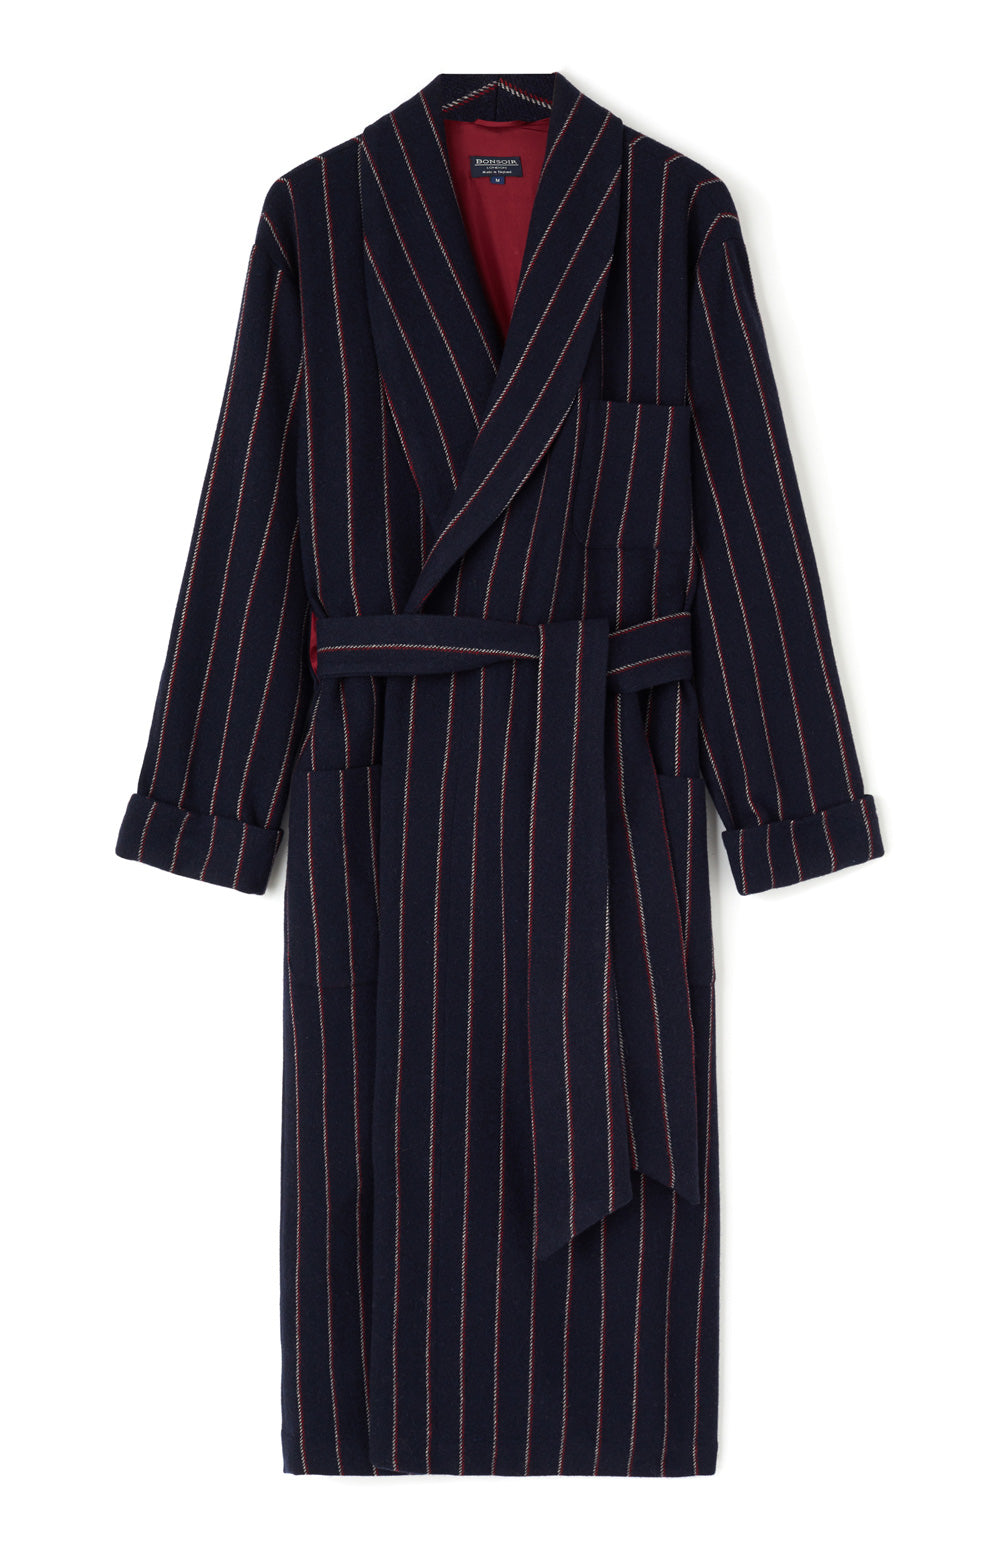 Luxury Silk-Lined Navy Red Stripe Wool Robe | Bonsoir of London